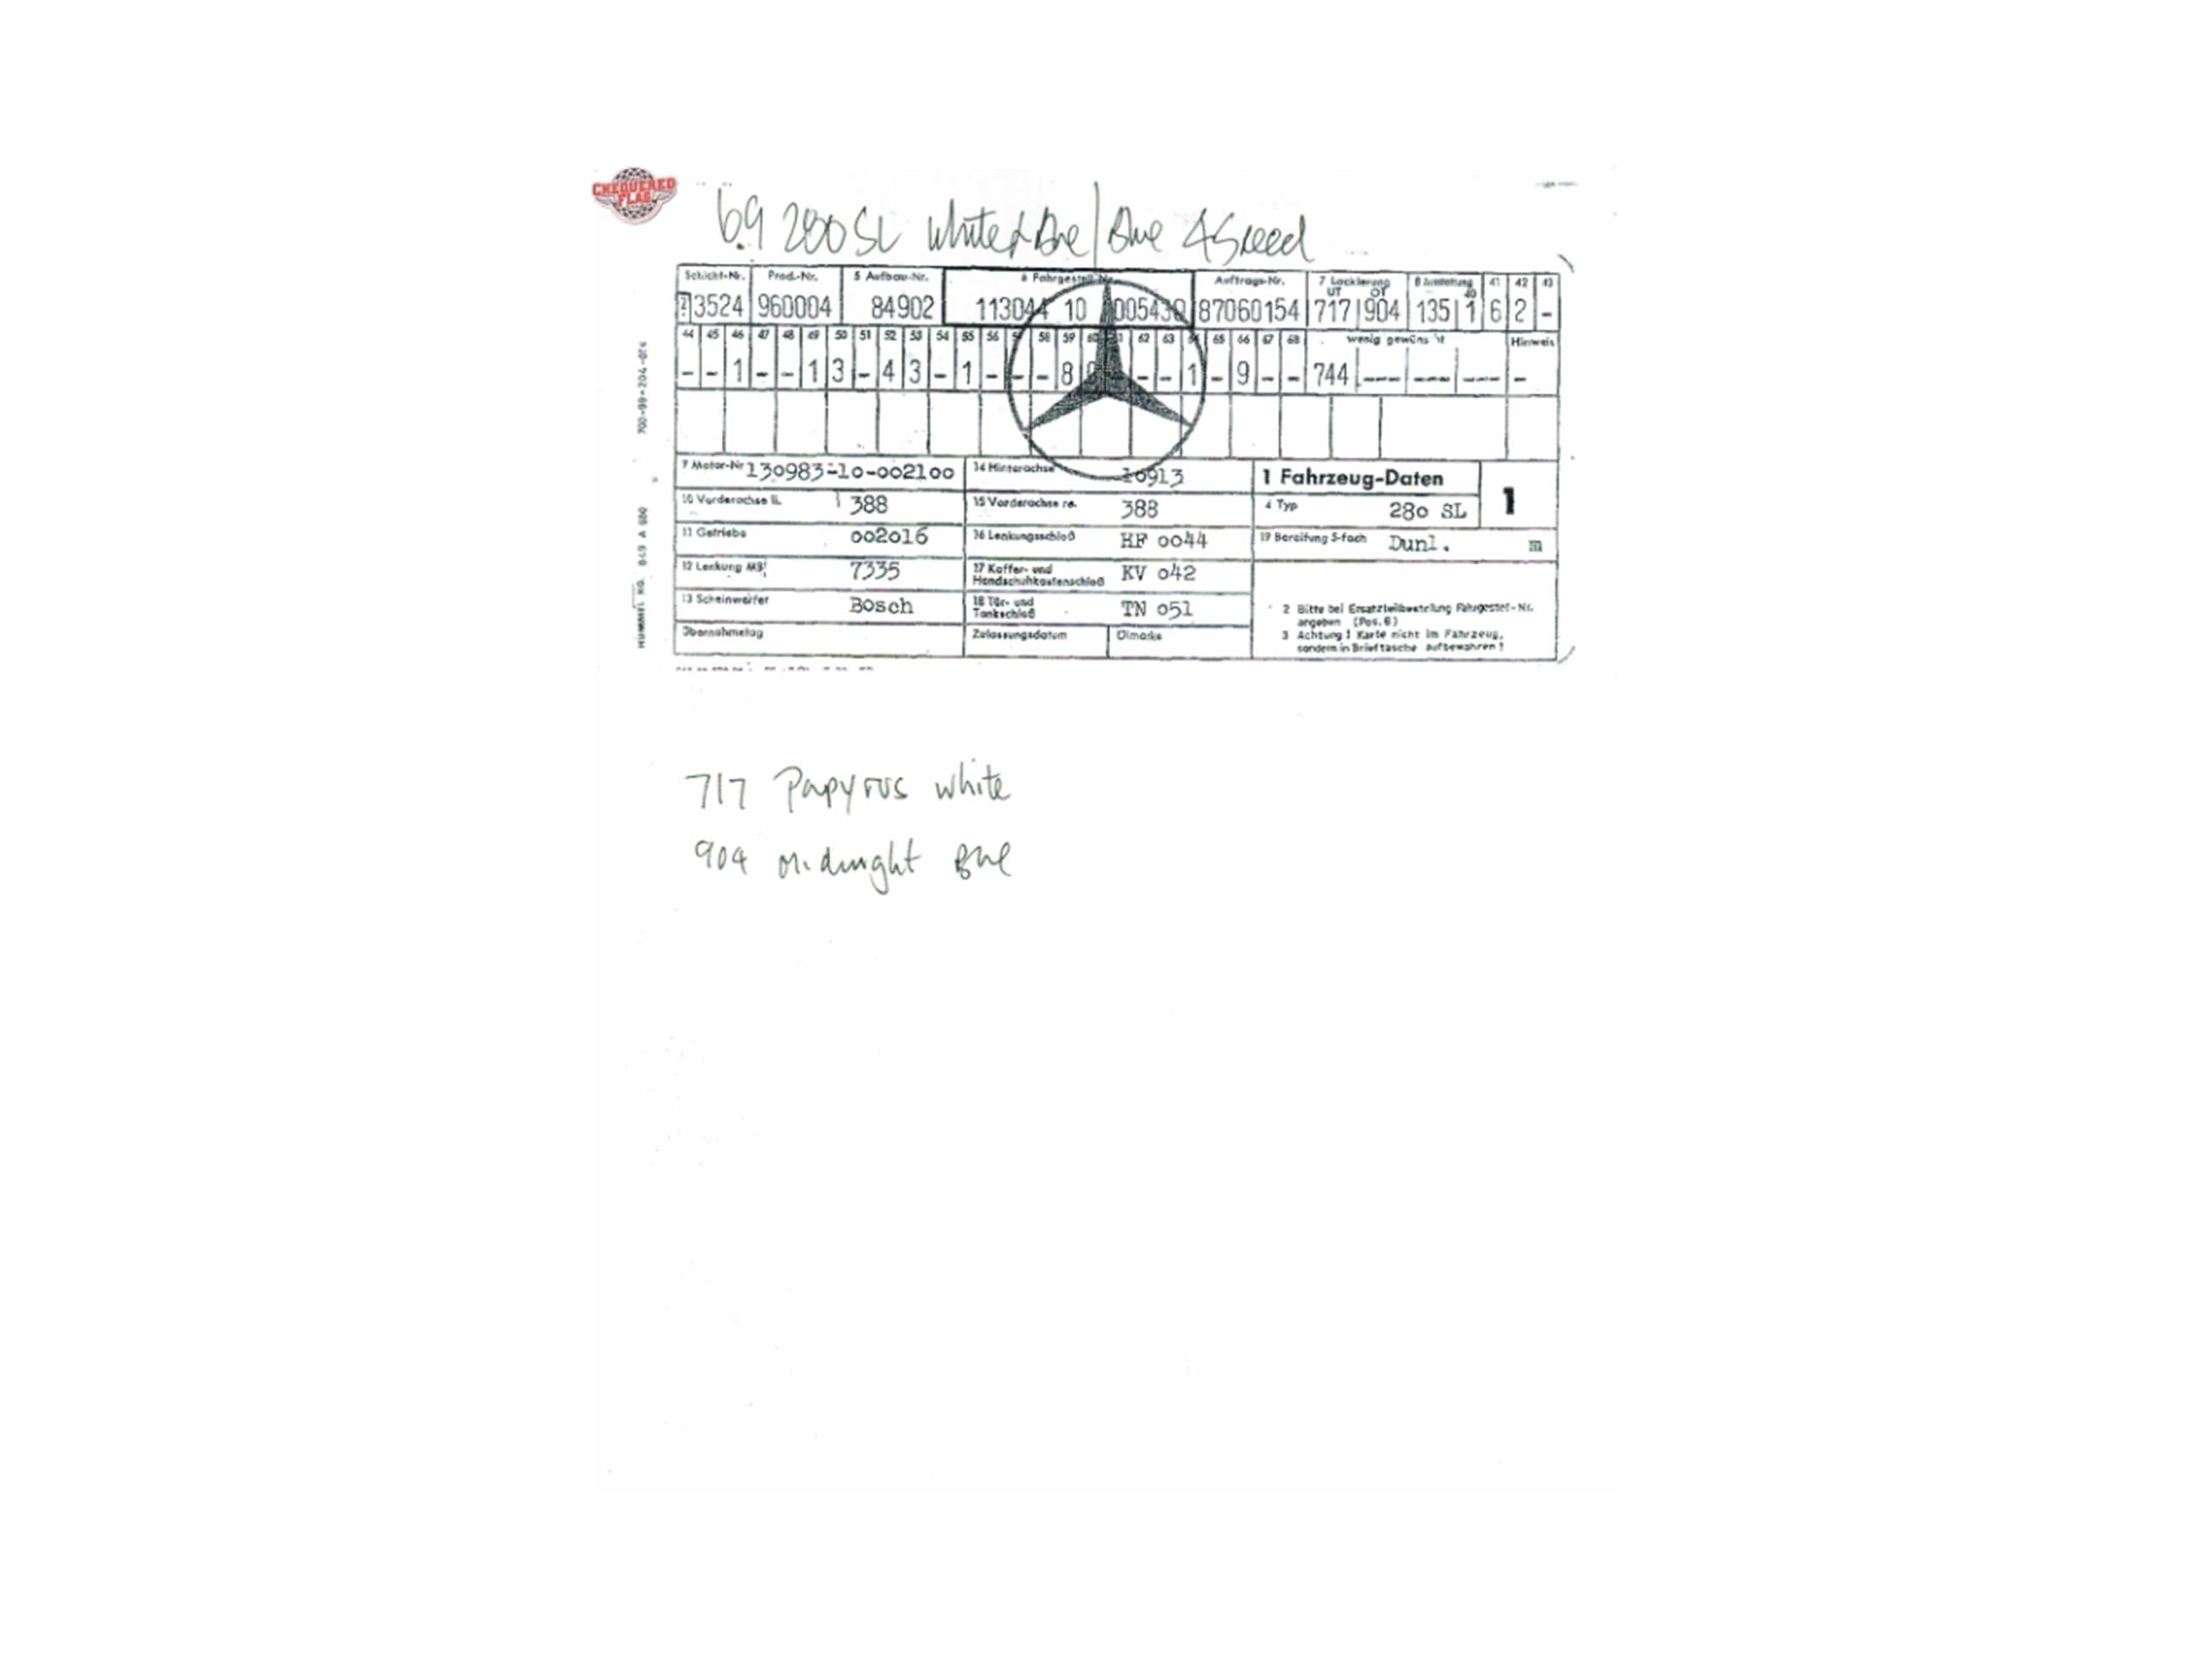 Fender Telecaster Wiring Diagram For 1969 Schematic Diagrams 52 Reissue 280sl Trusted U2022 Stratocaster